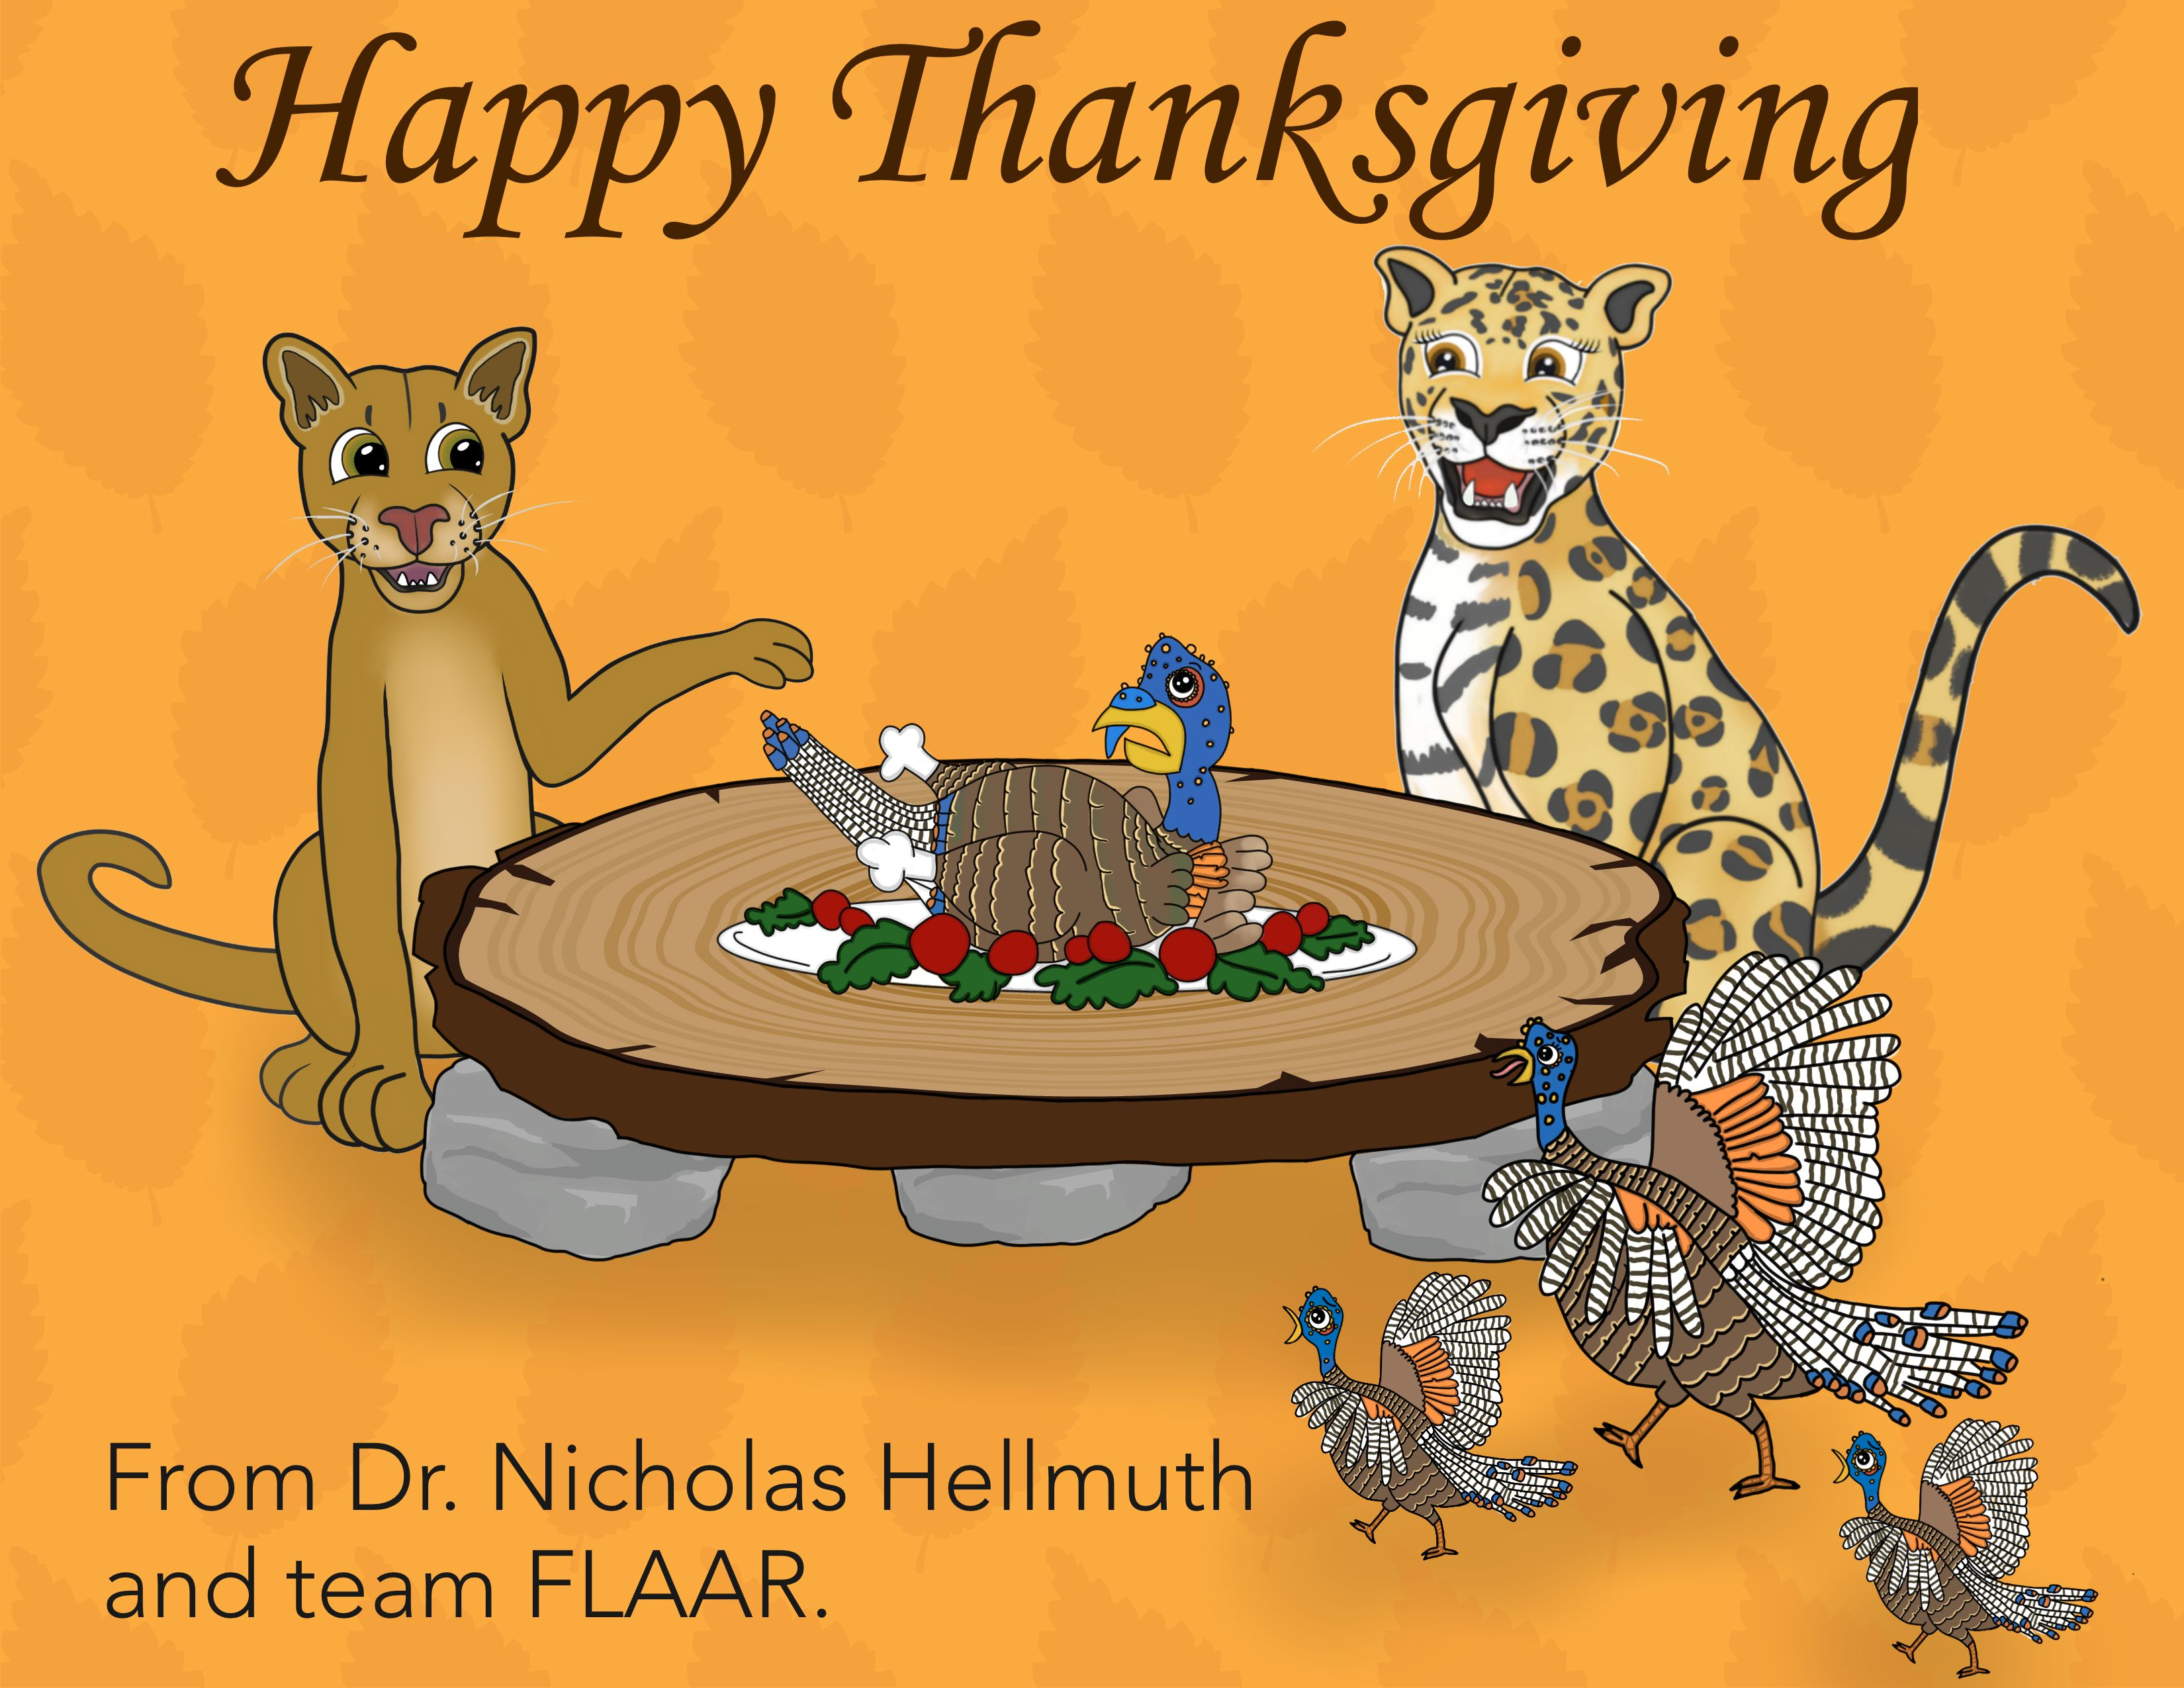 http://www.maya-ethnozoology.org/images/banners/Happy_thanksgiving_2016_message_from_Dr_Nicholas_FLAAR_Reports_MQ